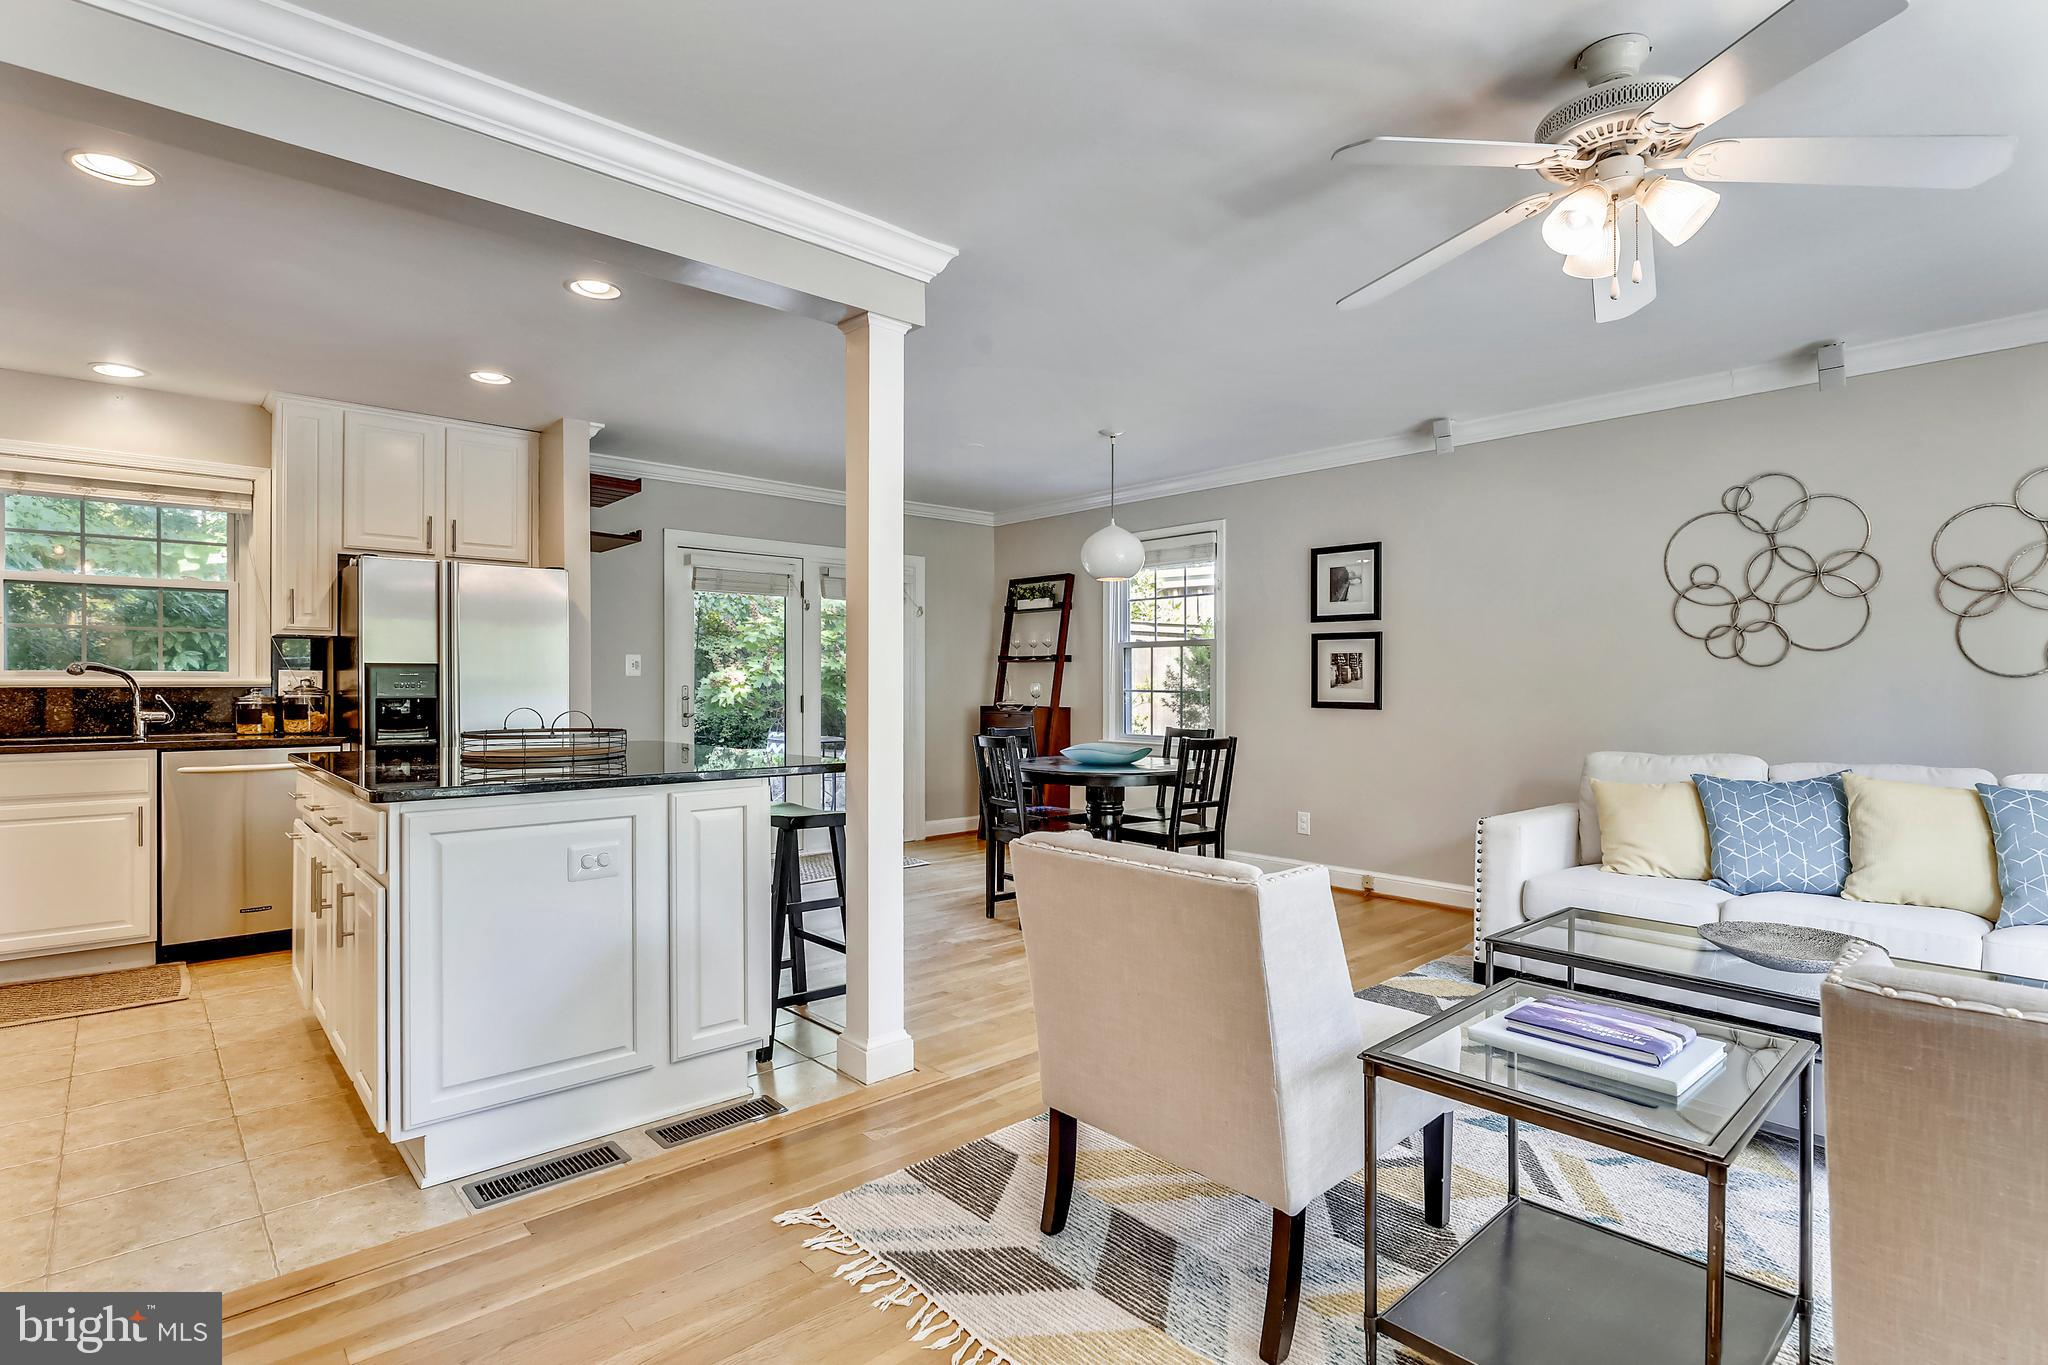 FANTASTIC NEW PRICE! Open 8/10 & 8/11 2-4pm. Price adjustment for this delightful 4BR/2BA Braddock Heights home that is overdue in welcoming its new owners. You MUST SEE the greenery that surrounds this home. It's located on convenient Braddock Road, and once inside the bustle of Alexandria living melts away and relaxed living takes over. An open floorplan greets you as you enter from a spacious, elegant terrace at the back of the home, which you reach from a shared private driveway with space for up to four cars. This access also means you could easily manage one level living as 2 bedrooms, 1 full bath with walk-in shower, and kitchen/living room/and dining room are all on the same level. Downstairs are 2 more bedrooms, another full bath, a den with a fireplace and large, convenient utility room. Throughout the home are savvy tech touches and finishes including a spectacular kitchen with Viking stove and Dacor microwave, upgraded baths (with heated floors and a Bluetooth-enable speaker in the light) and so much space you'll think you've landed in Square Footage Heaven. (There's also a HUGE floored attic that runs the length of the house and offers tremendous storage or expansion options.) But it's really the lush outdoor space that will delight. It's unparalleled for a home at this price in this neighborhood! Plop yourself in the hammock, take a rest & refreshment on the terrace, walk the pathways dotted with pretty plantings around the home... the views delight at every turn. If you must leave your little Alexandria Oasis, you'll find the Metro area's best outside your doorstep... Del Ray, Shirlington, Old Town, Crystal City (home to Amazon's HQ2) and DC are each just minutes away. Walk to George Mason Elementary, Chinquapin Park or any number of neighborhood treats. Stop your search, you've found Your Home.